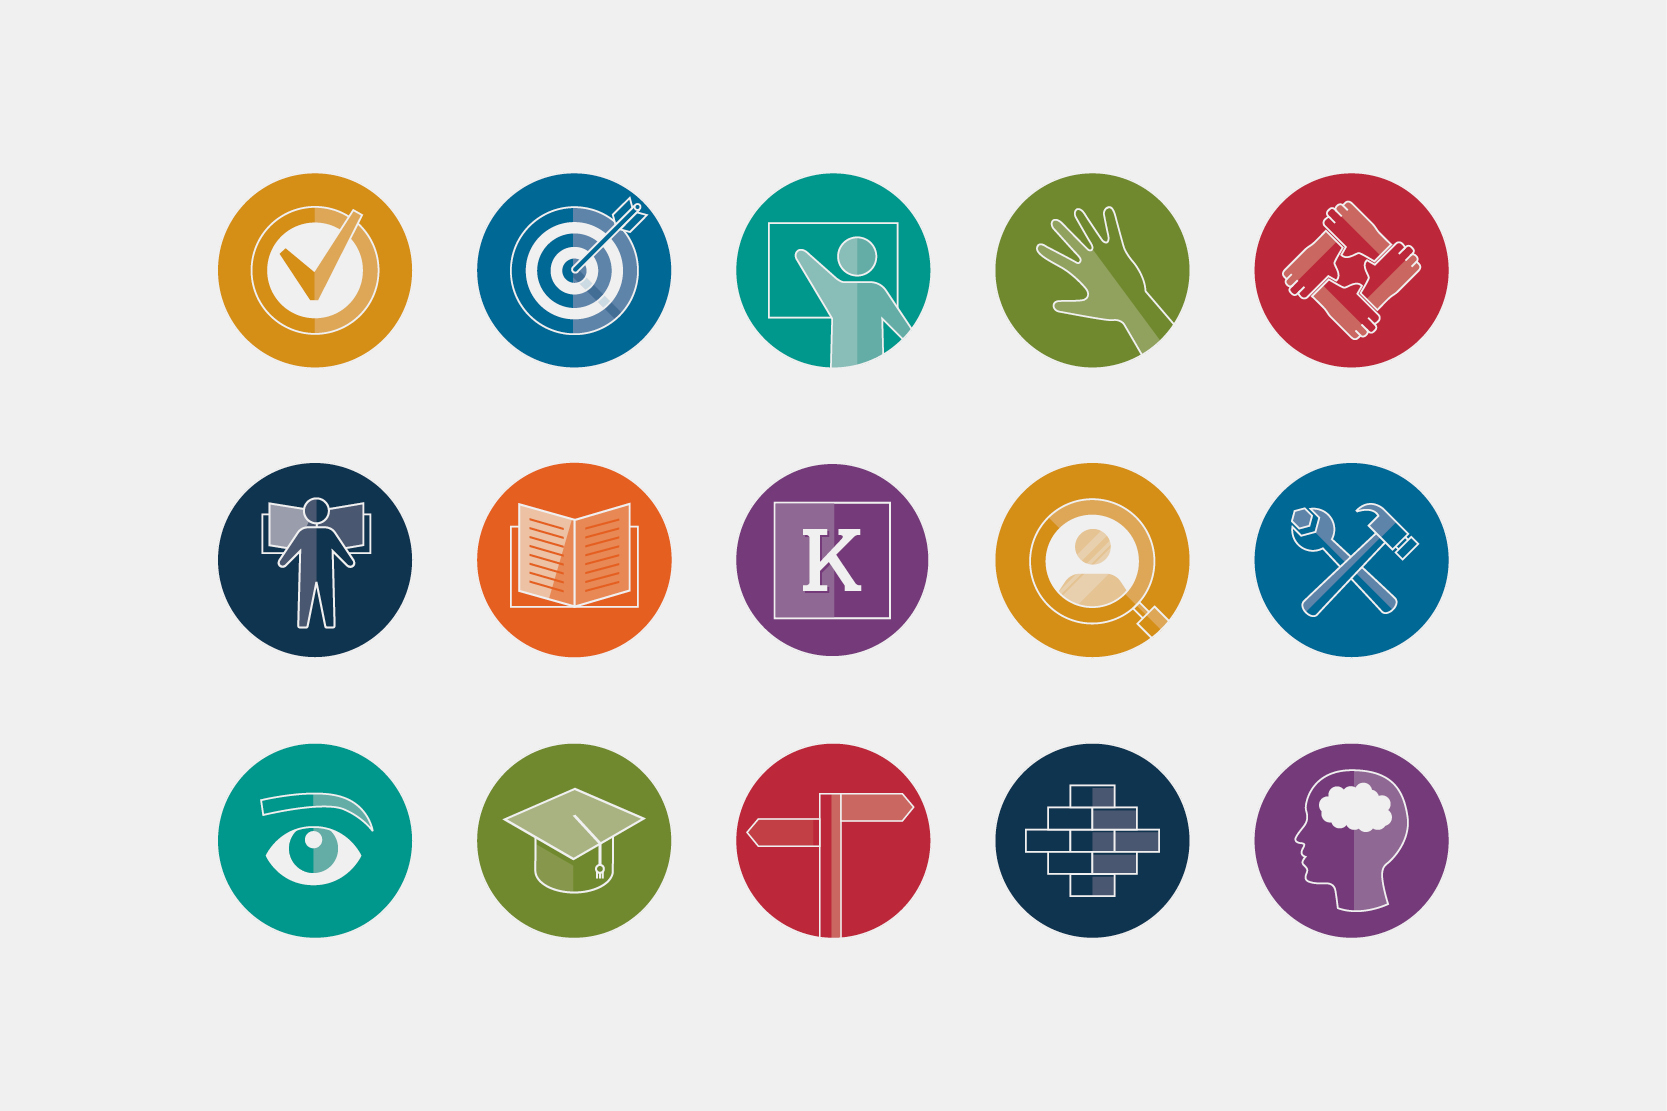 Indevelop brand icons